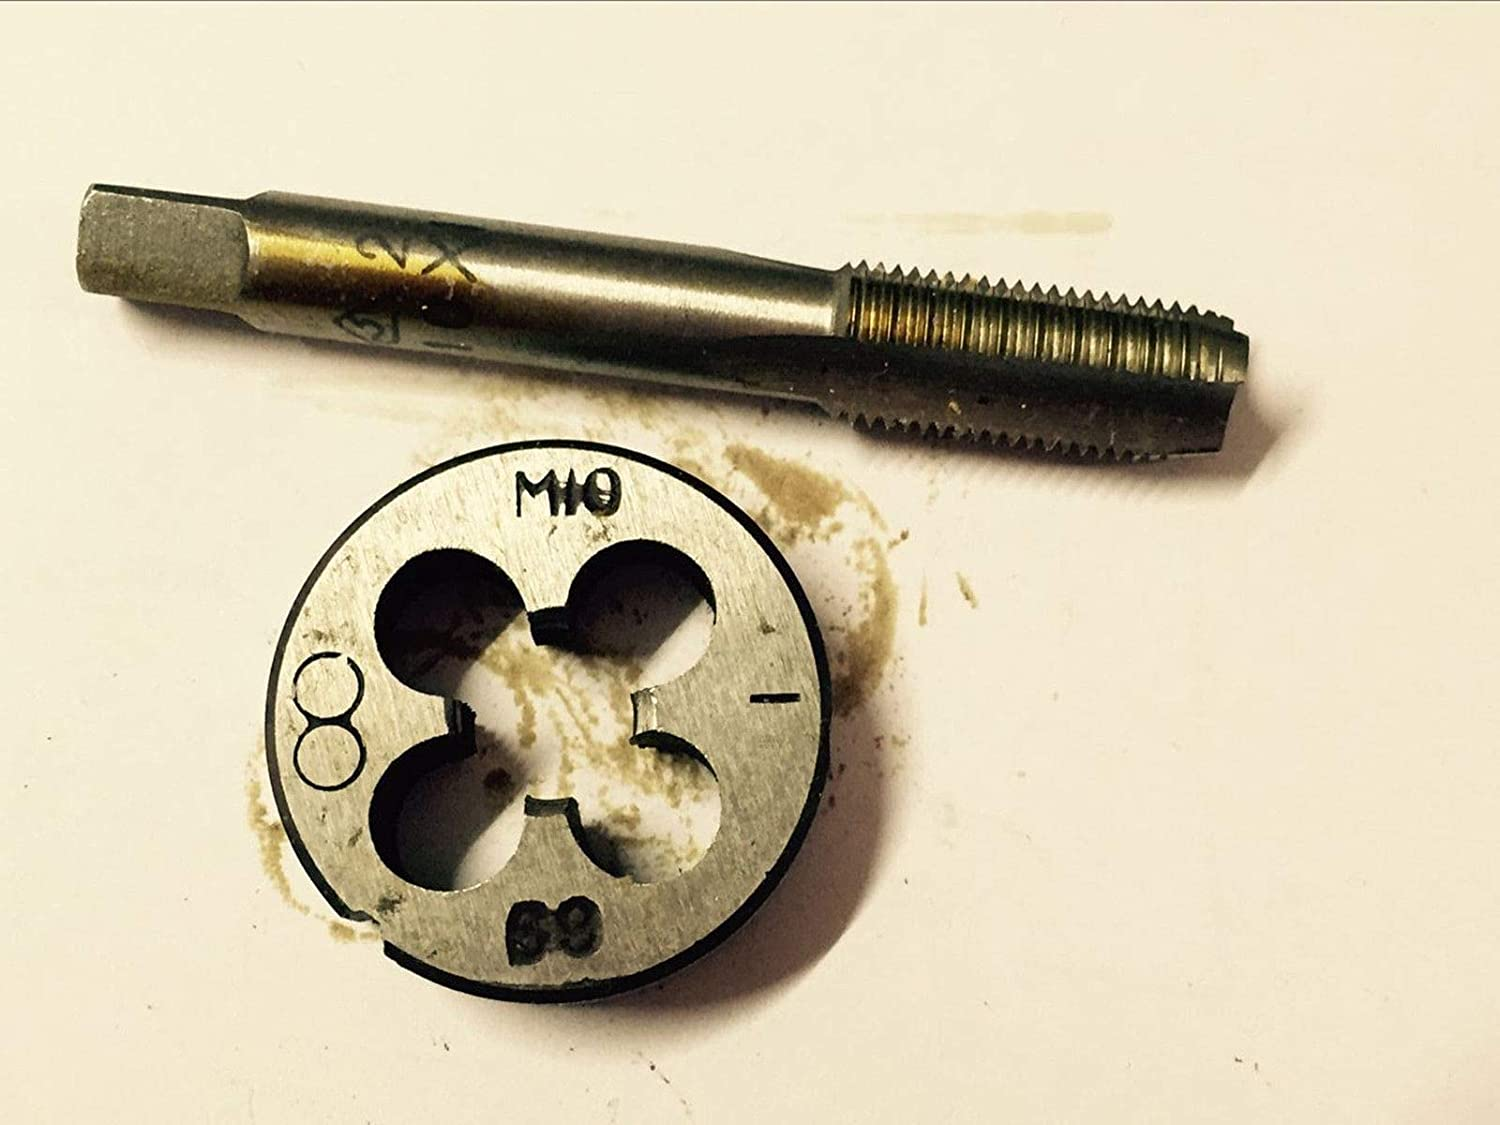 1pc Metric Right Hand Die M10x1.25 mm Dies Threading Tools 10mm x 1.25mm pitch